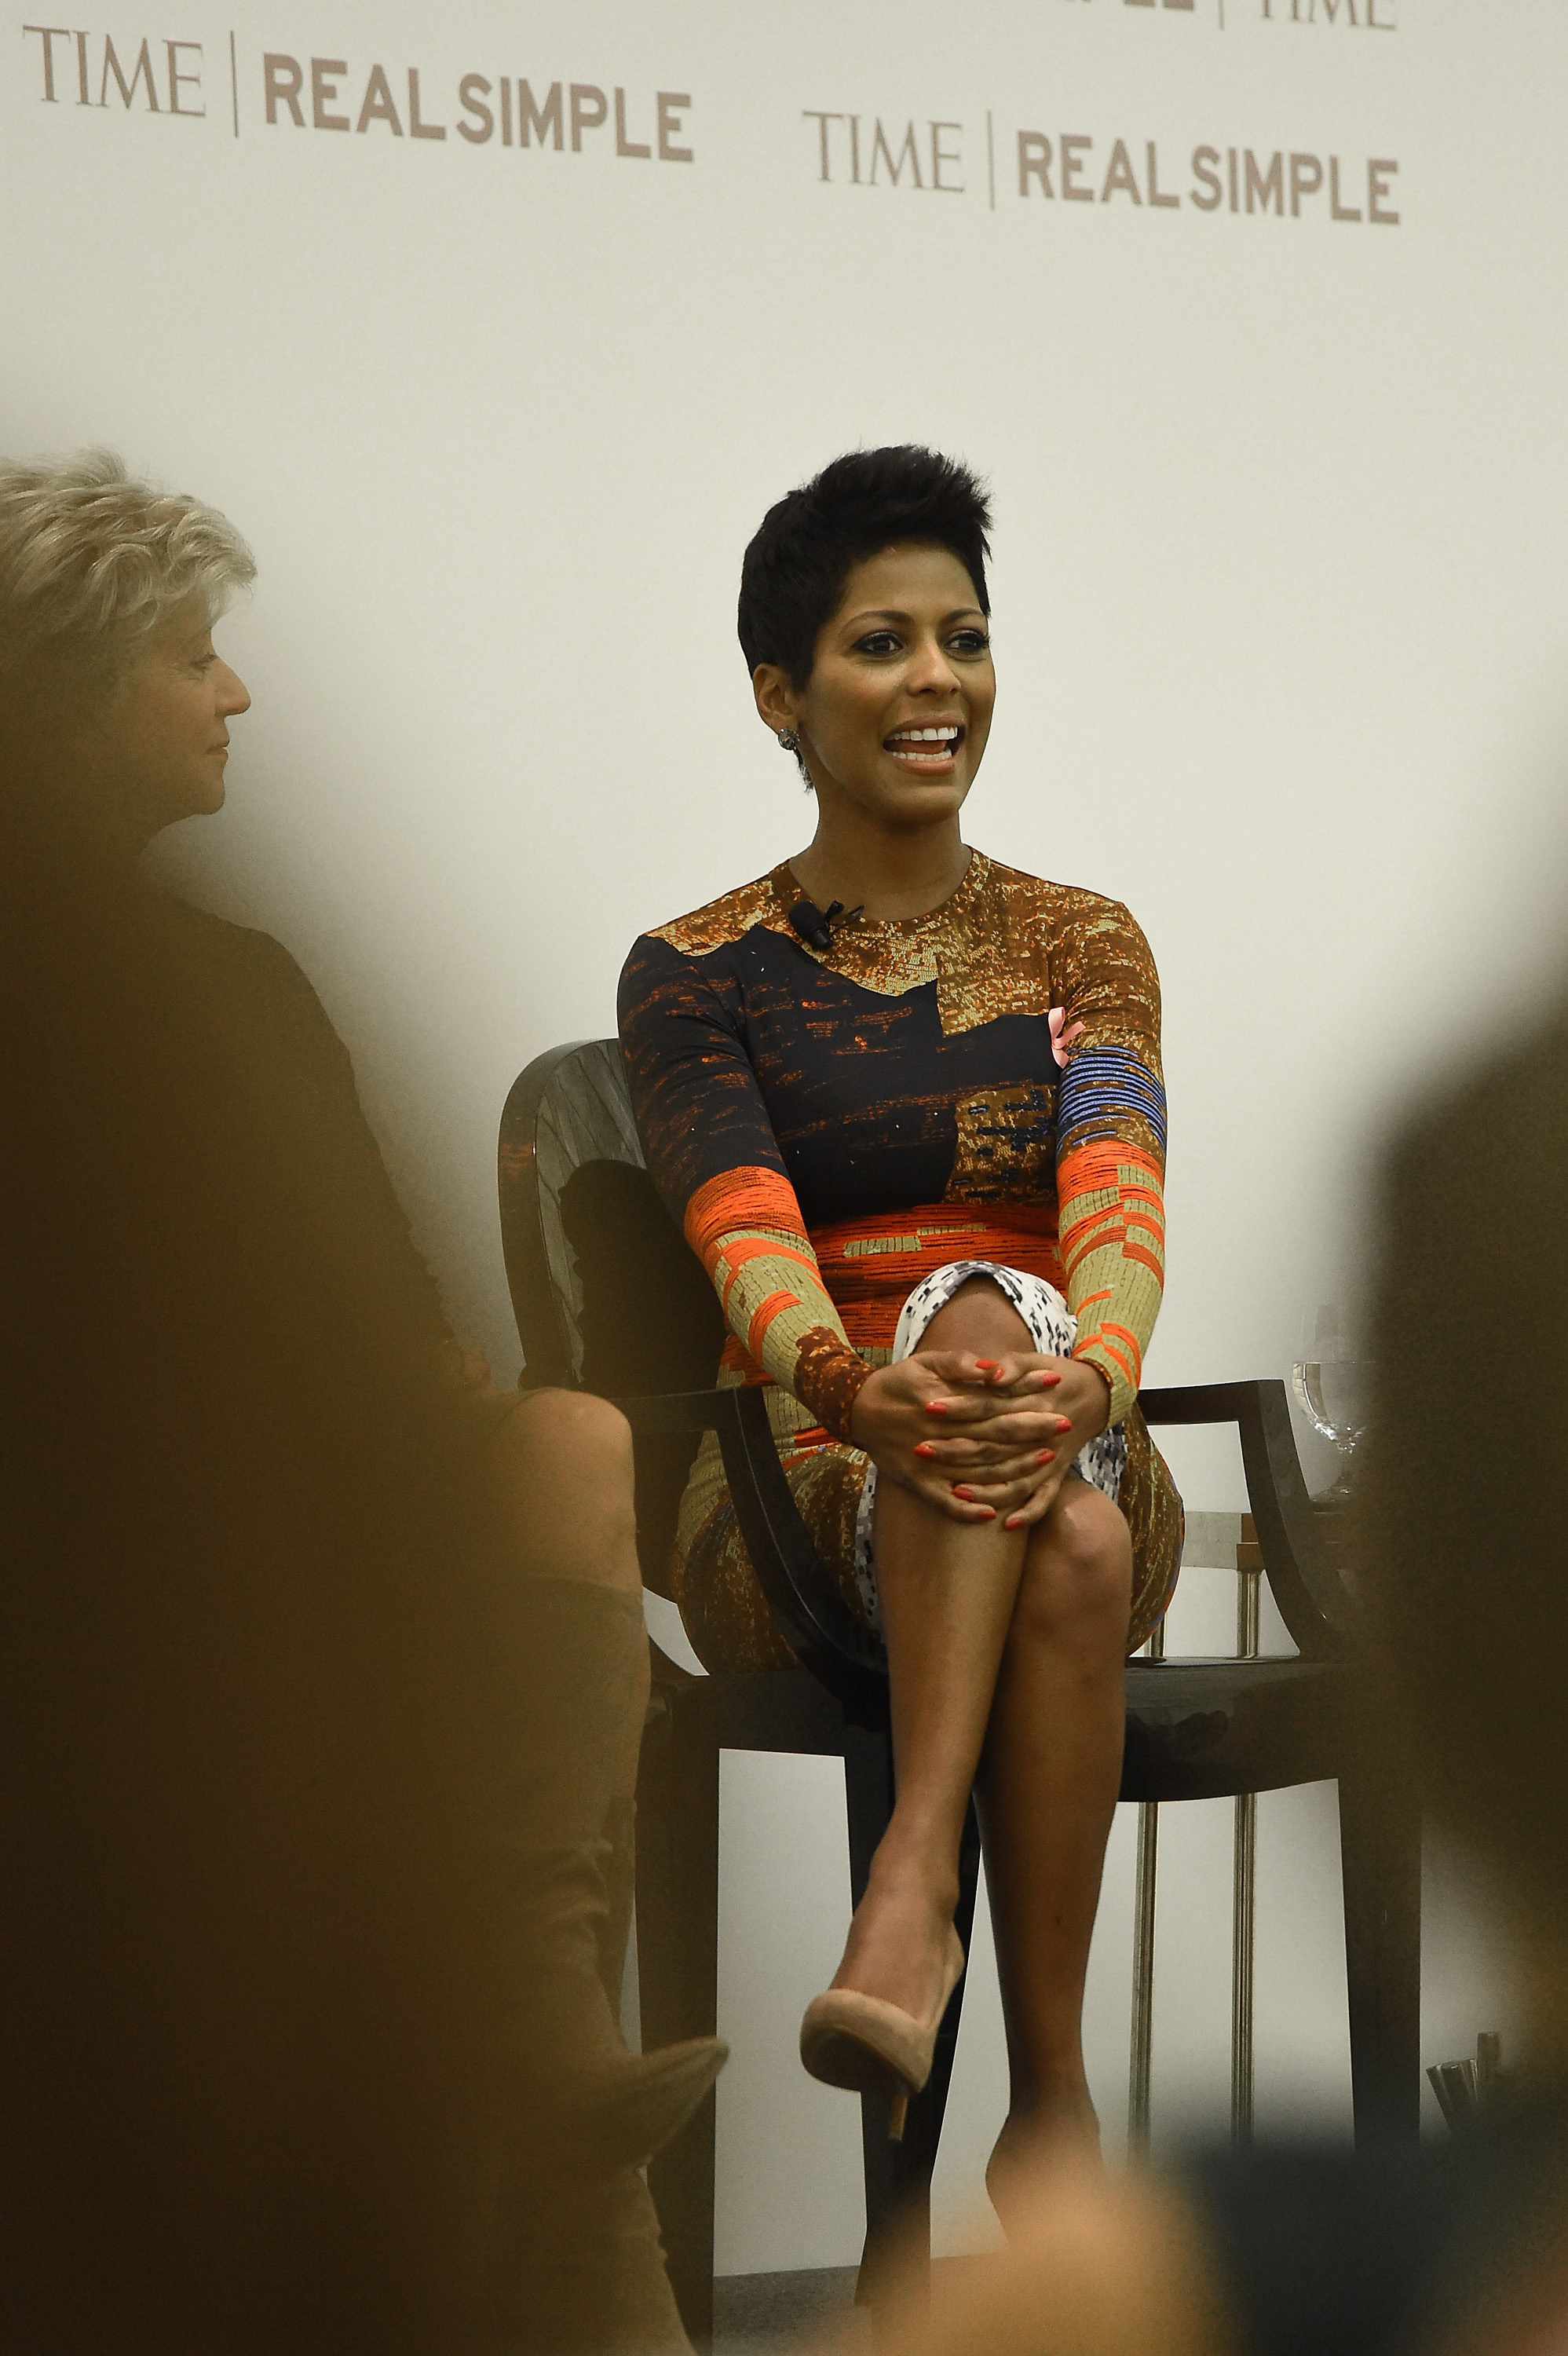 Correspondent Tamron Hall speaks at the TIME and Real Simple's Women & Success event at the Park Hyatt on Oct. 1, 2014 in New York City.